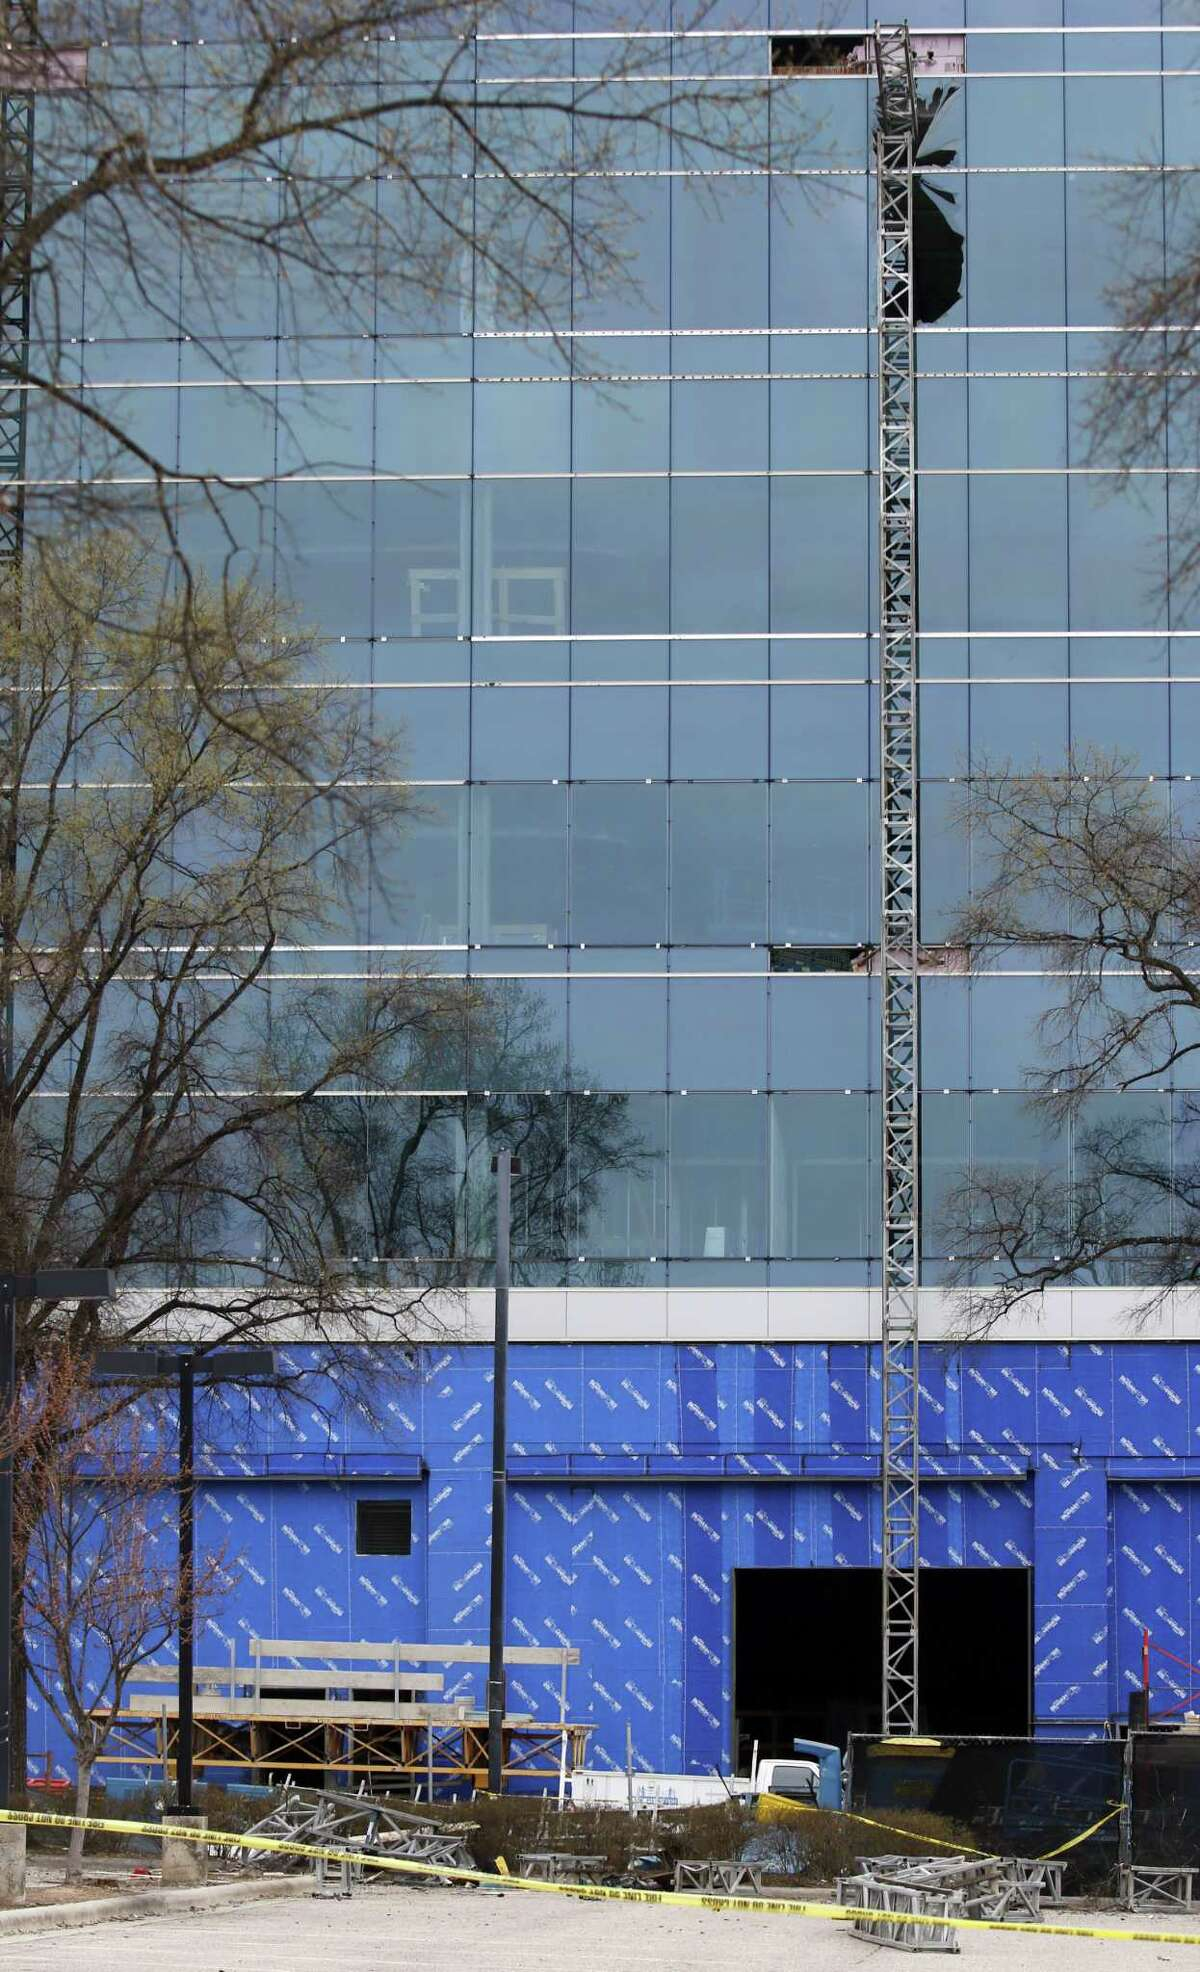 Yellow tape surrounds the piece of scaffolding that fell to the ground as a large section of framework hangs near shattered windows of the Charter Square building at the scene of a construction accident in downtown Raleigh, NC Monday, March 23, 2015. A scaffolding fell and crashed into the Charter Square project, killing three workers and sending another to a hospital. (AP Photo/The News & Observer, Harry Lynch)